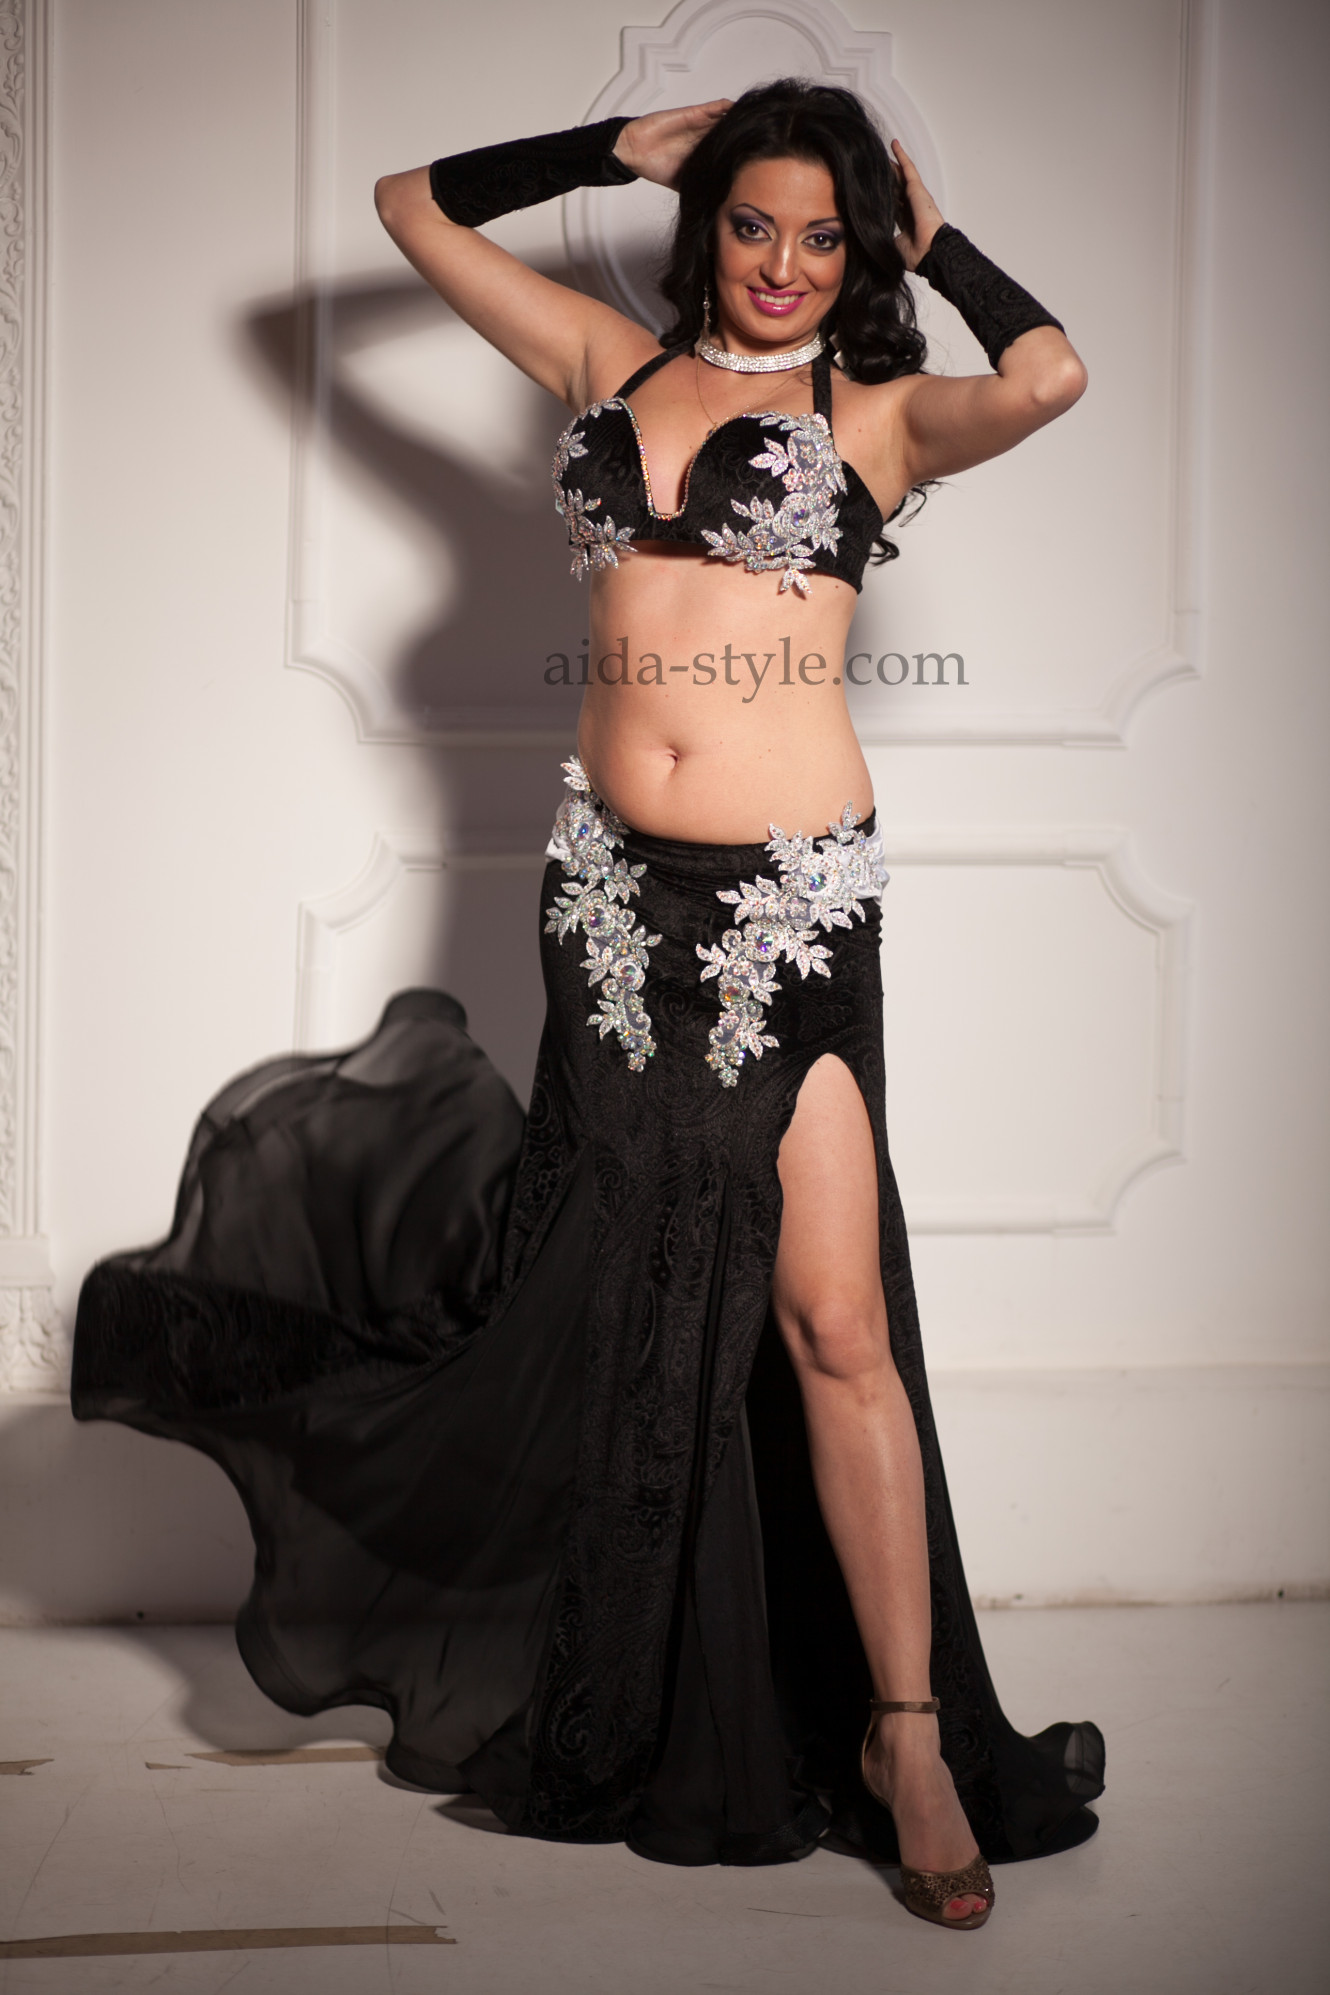 Professional belly dance costume in black color with white applications. The skirt is made from light fabric, with white belt